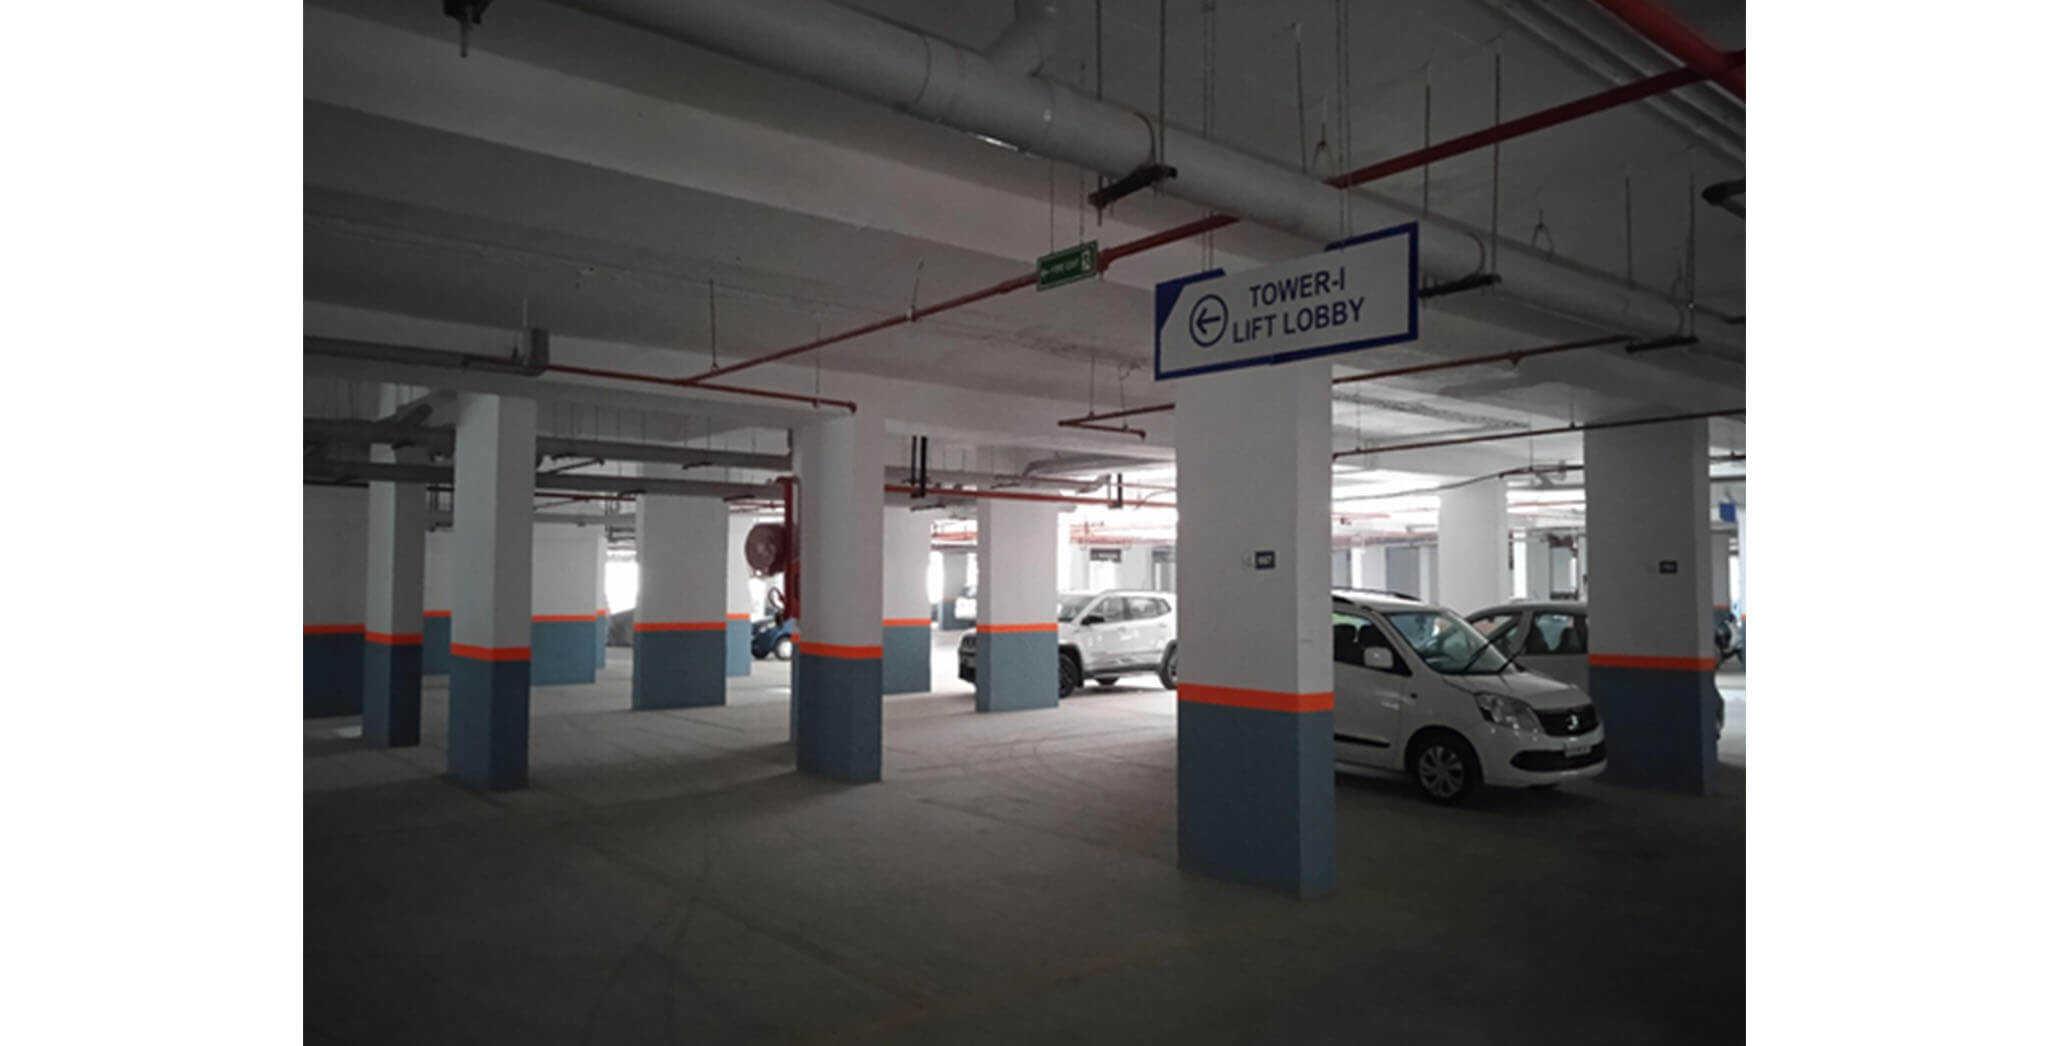 Dec 2020 - Basement and Car parking